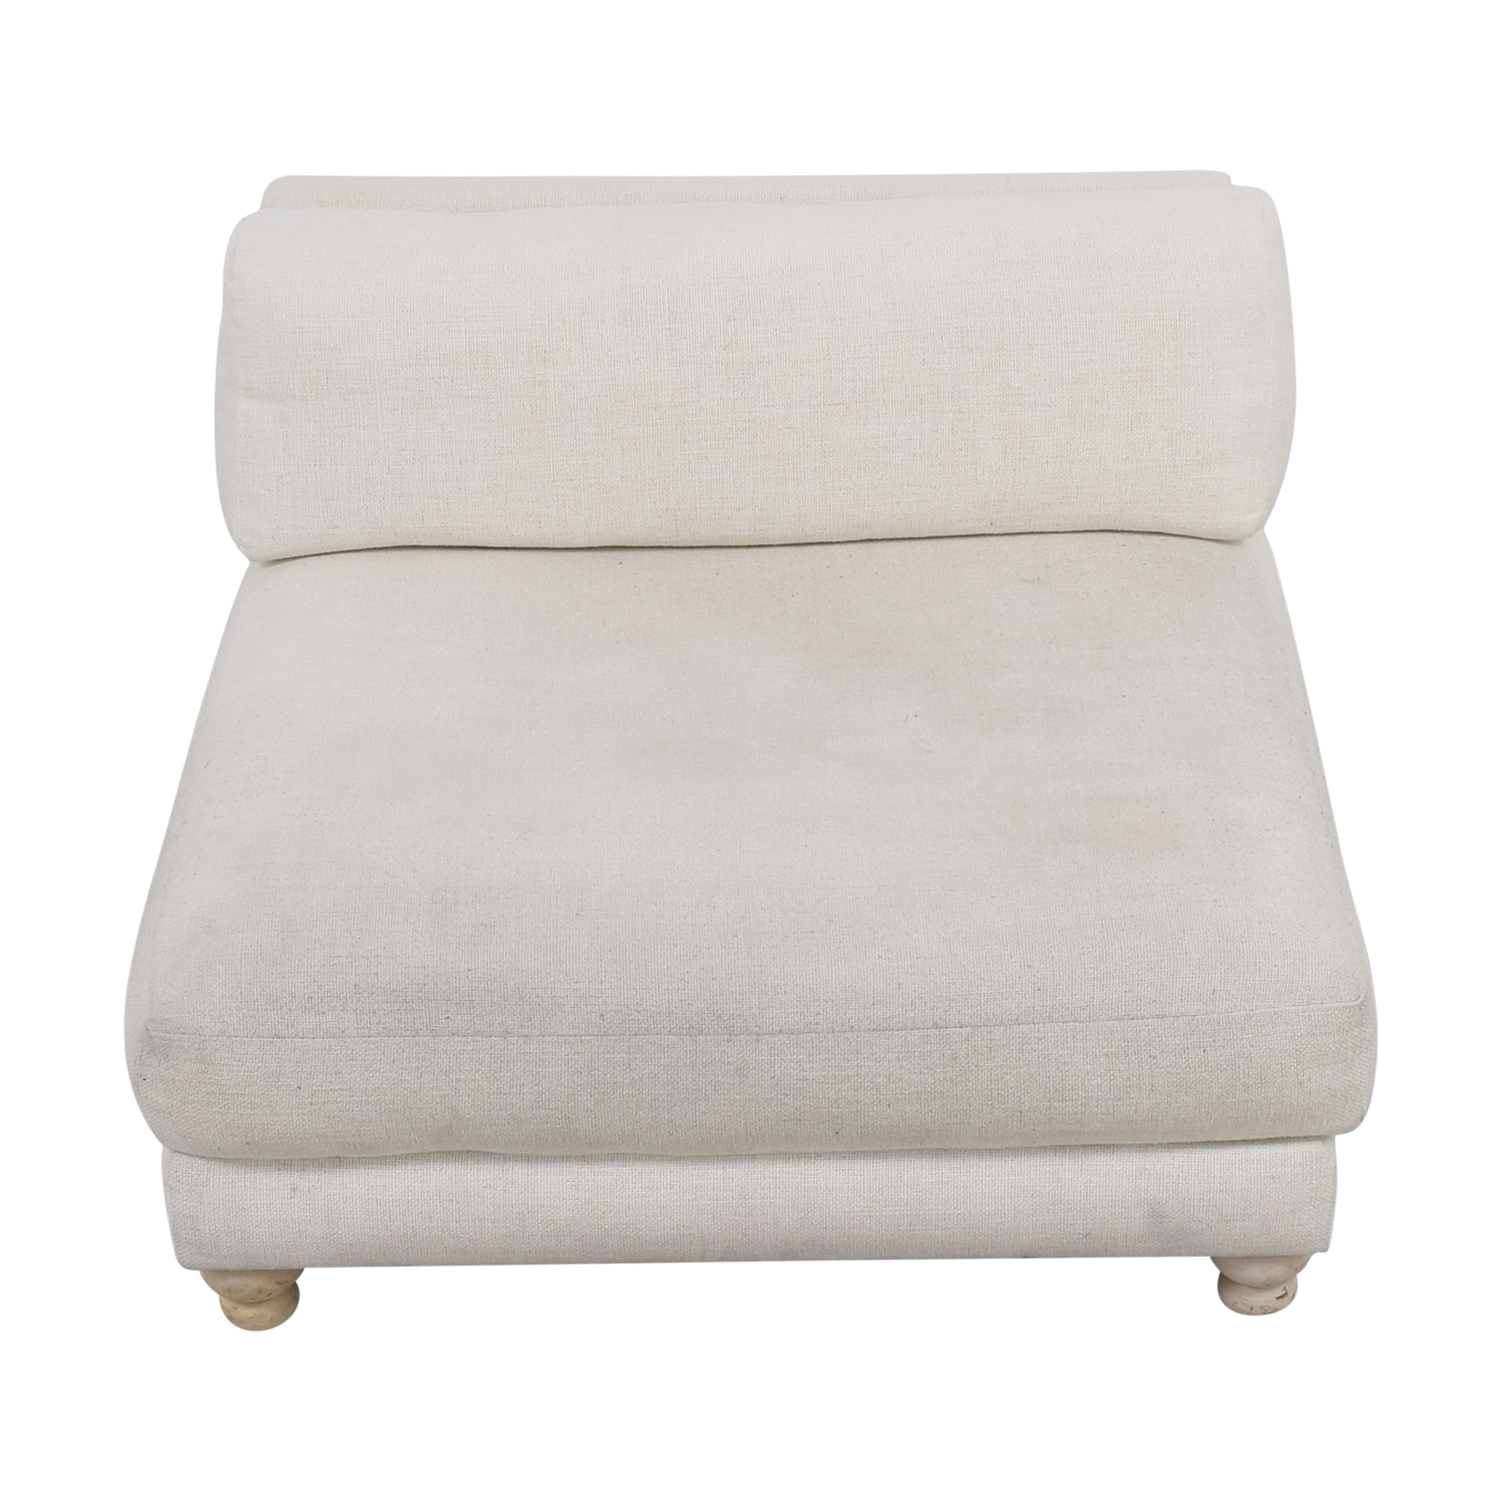 CB2 CB2 Piazza Apartment Sofa on sale